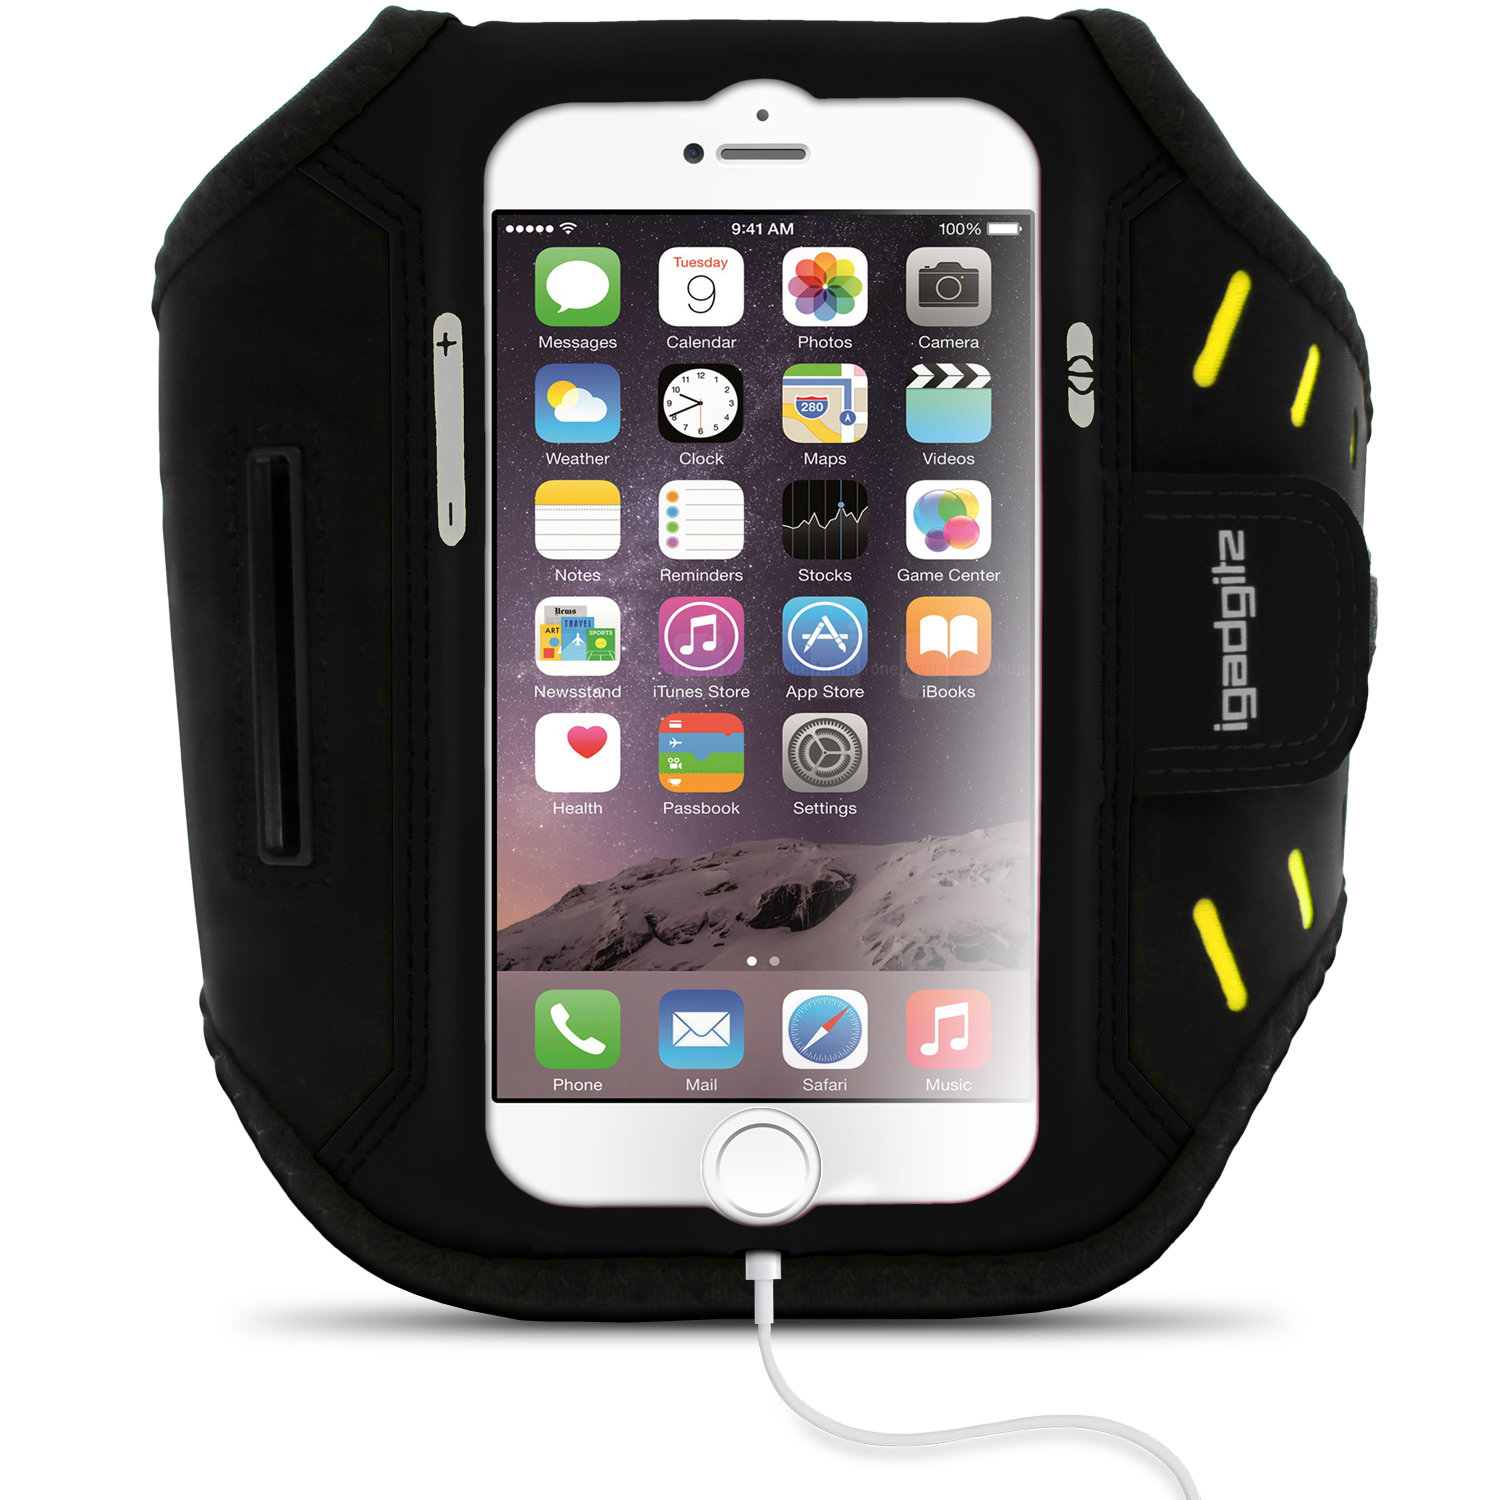 "iGadgitz Water Resistant Lightweight Neoprene Sports Jogging Gym Armband for Apple iPhone 7 & 8 4.7"" with Key Slot"